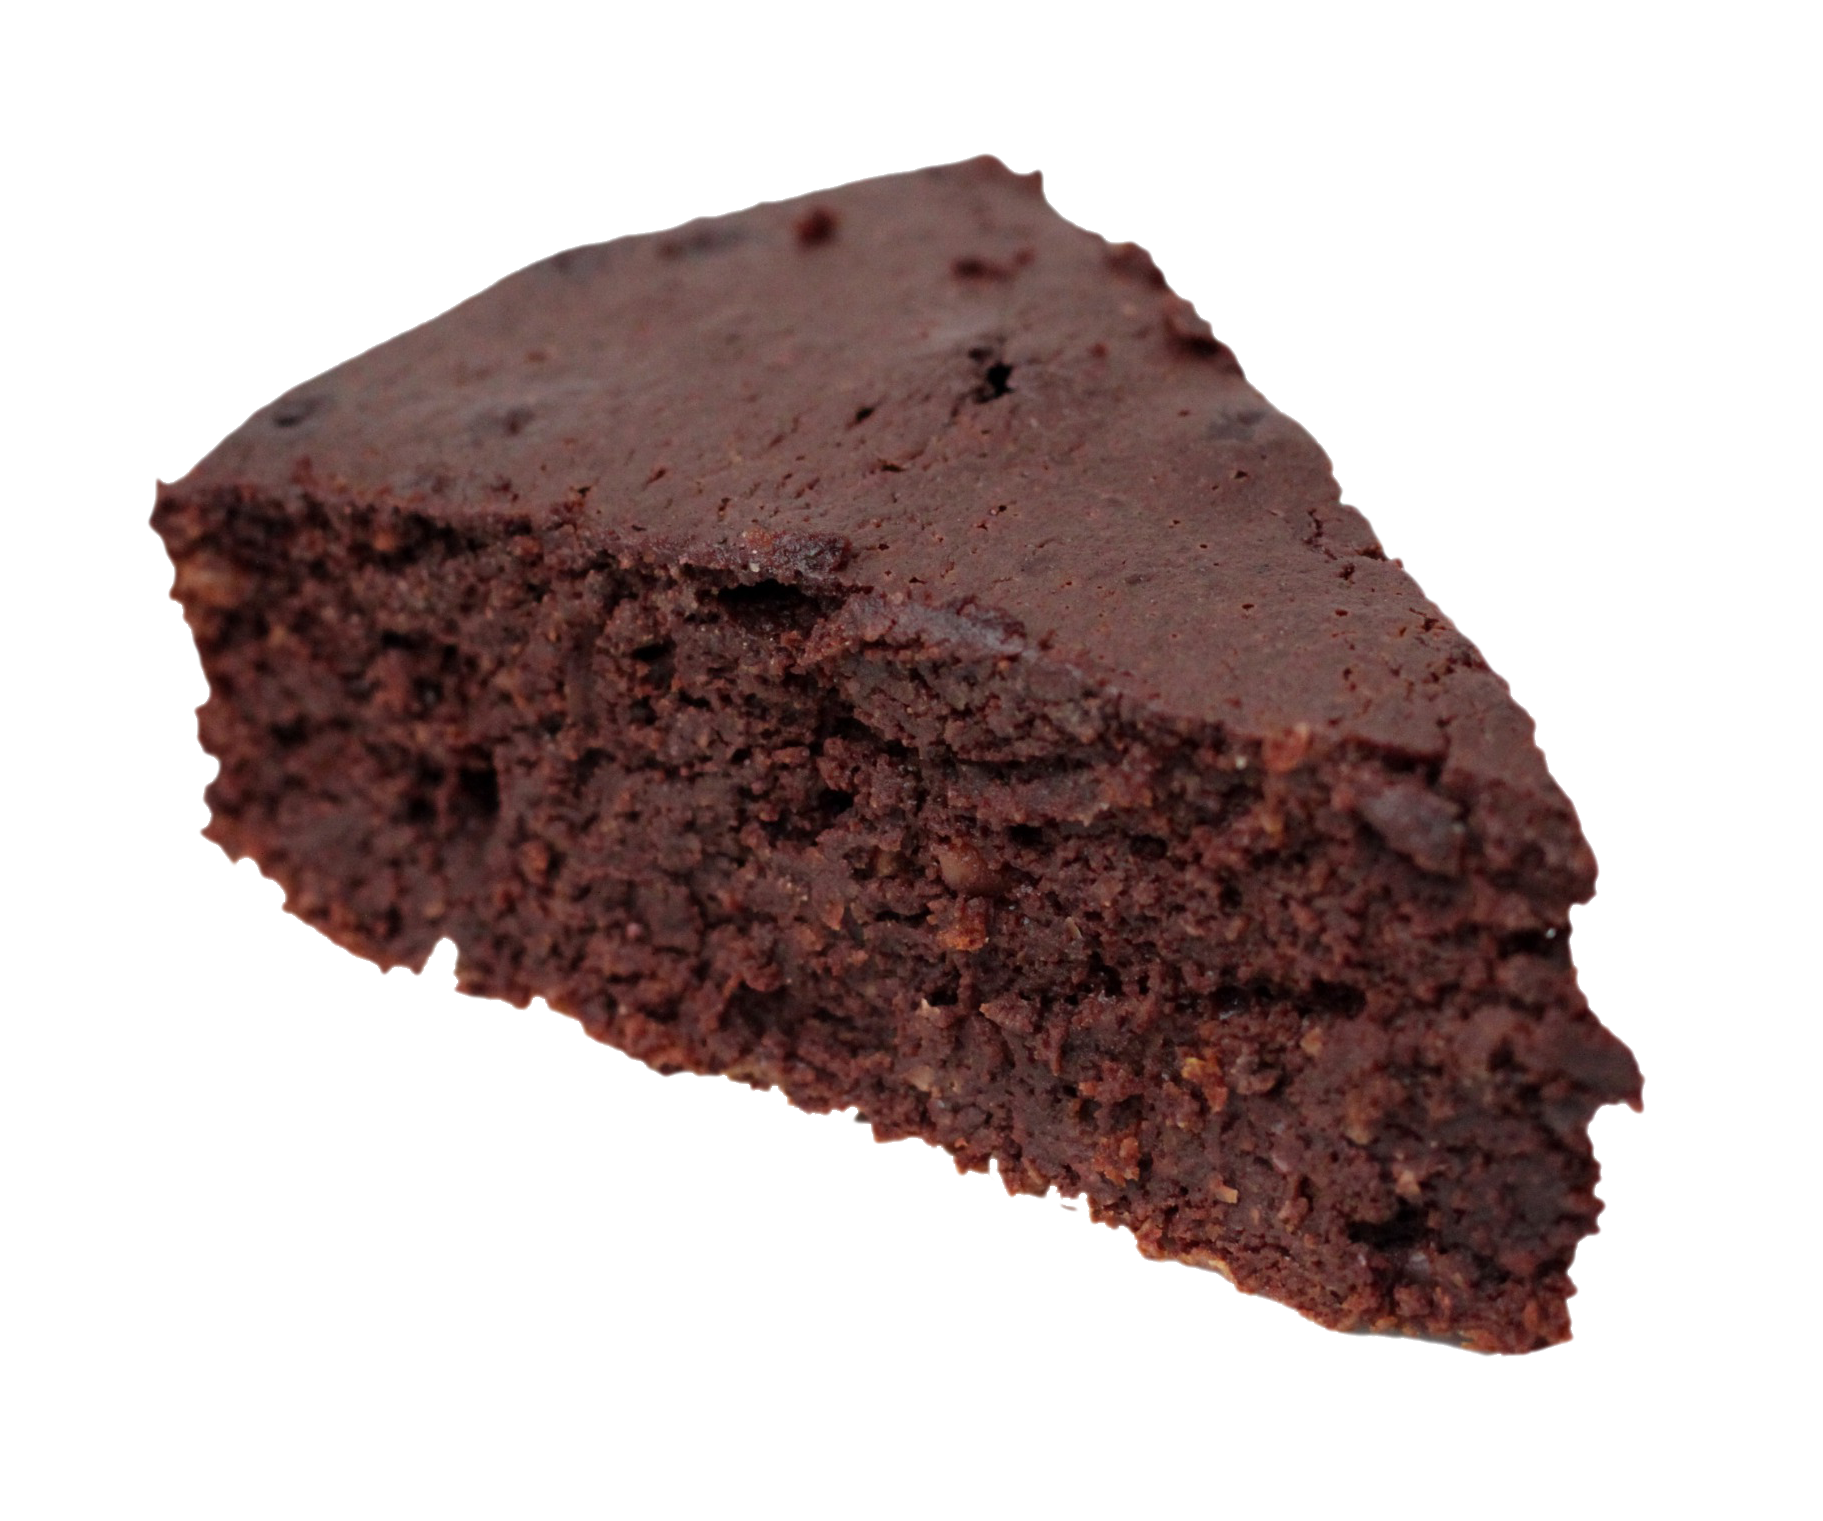 Cake Piece PNG Image.